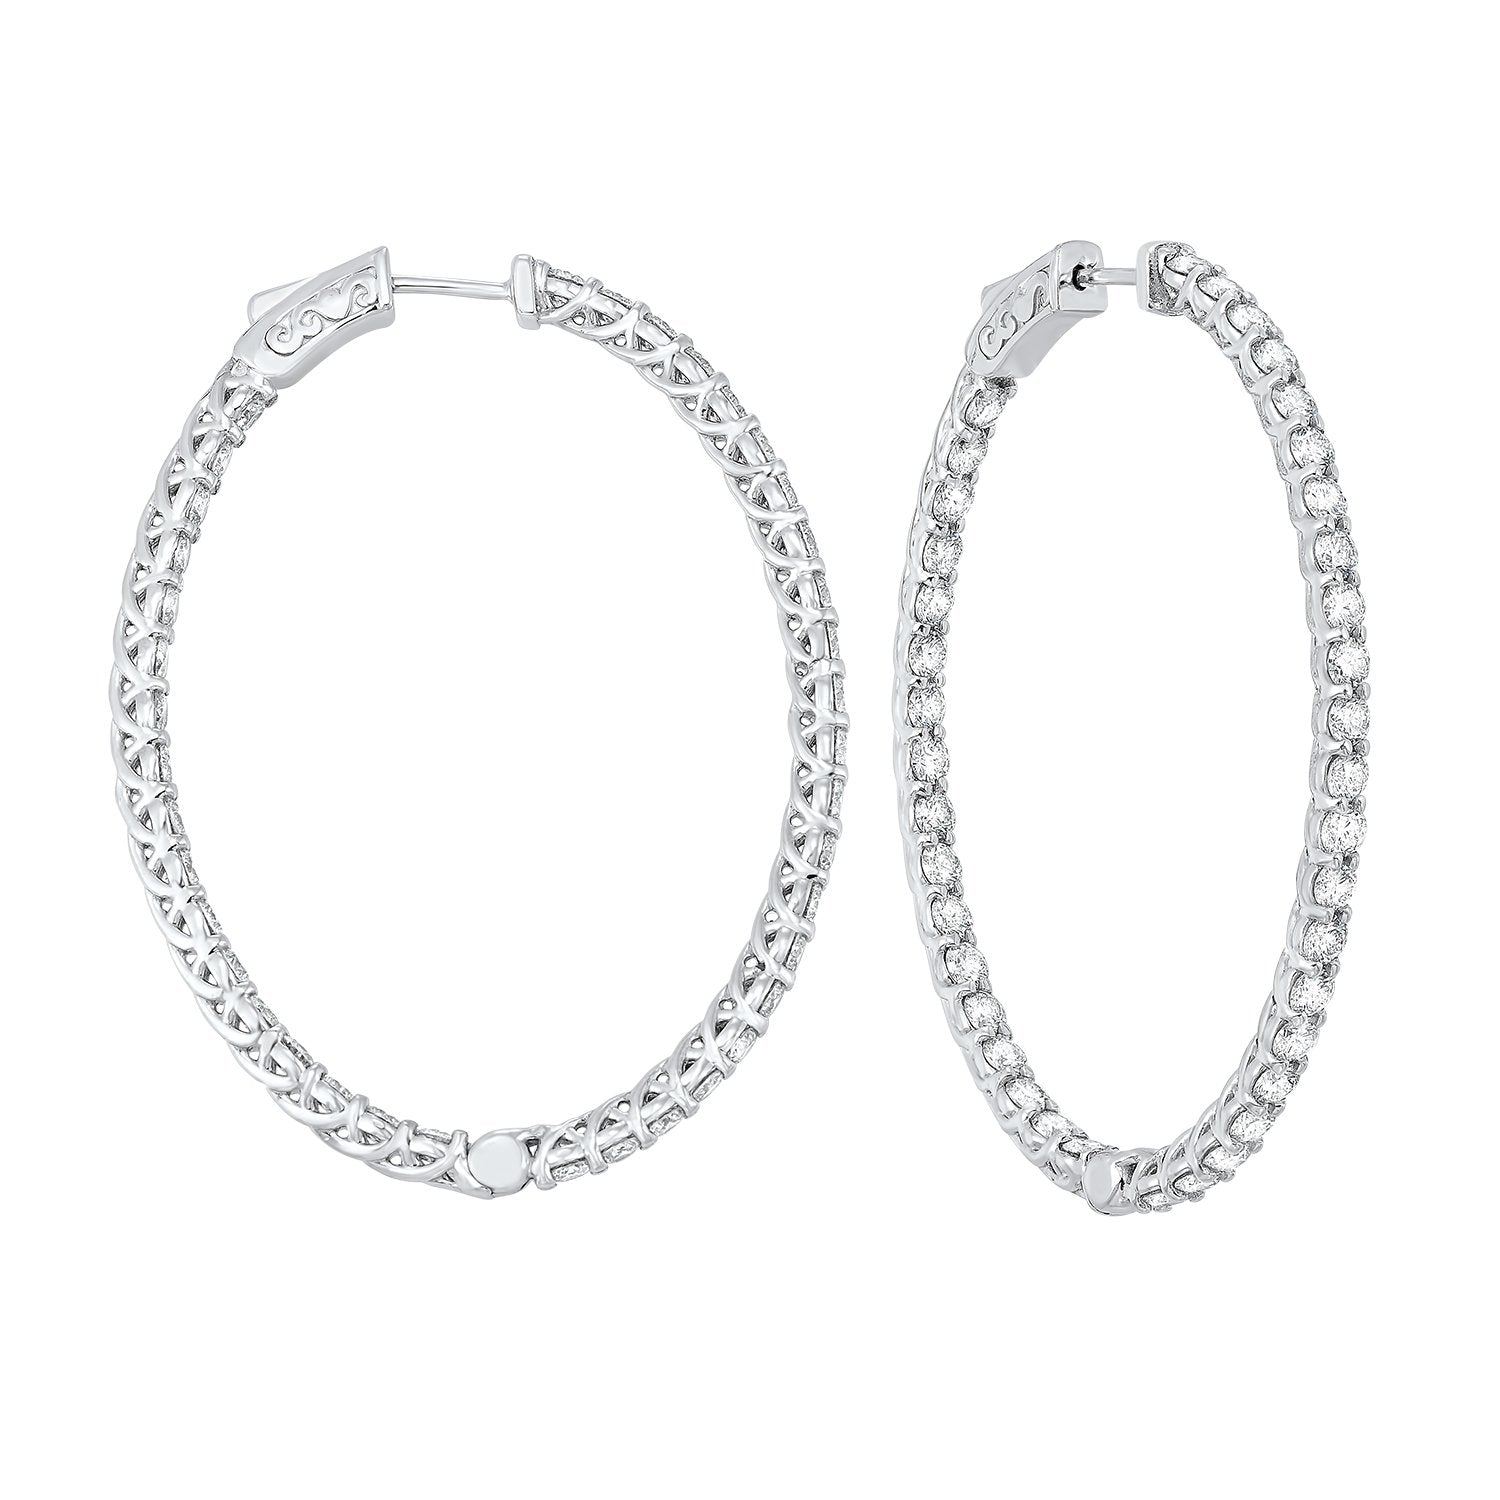 Delicate In-Out Diamond Hoop Earrings in 14K White Gold  (5 ct. tw.)